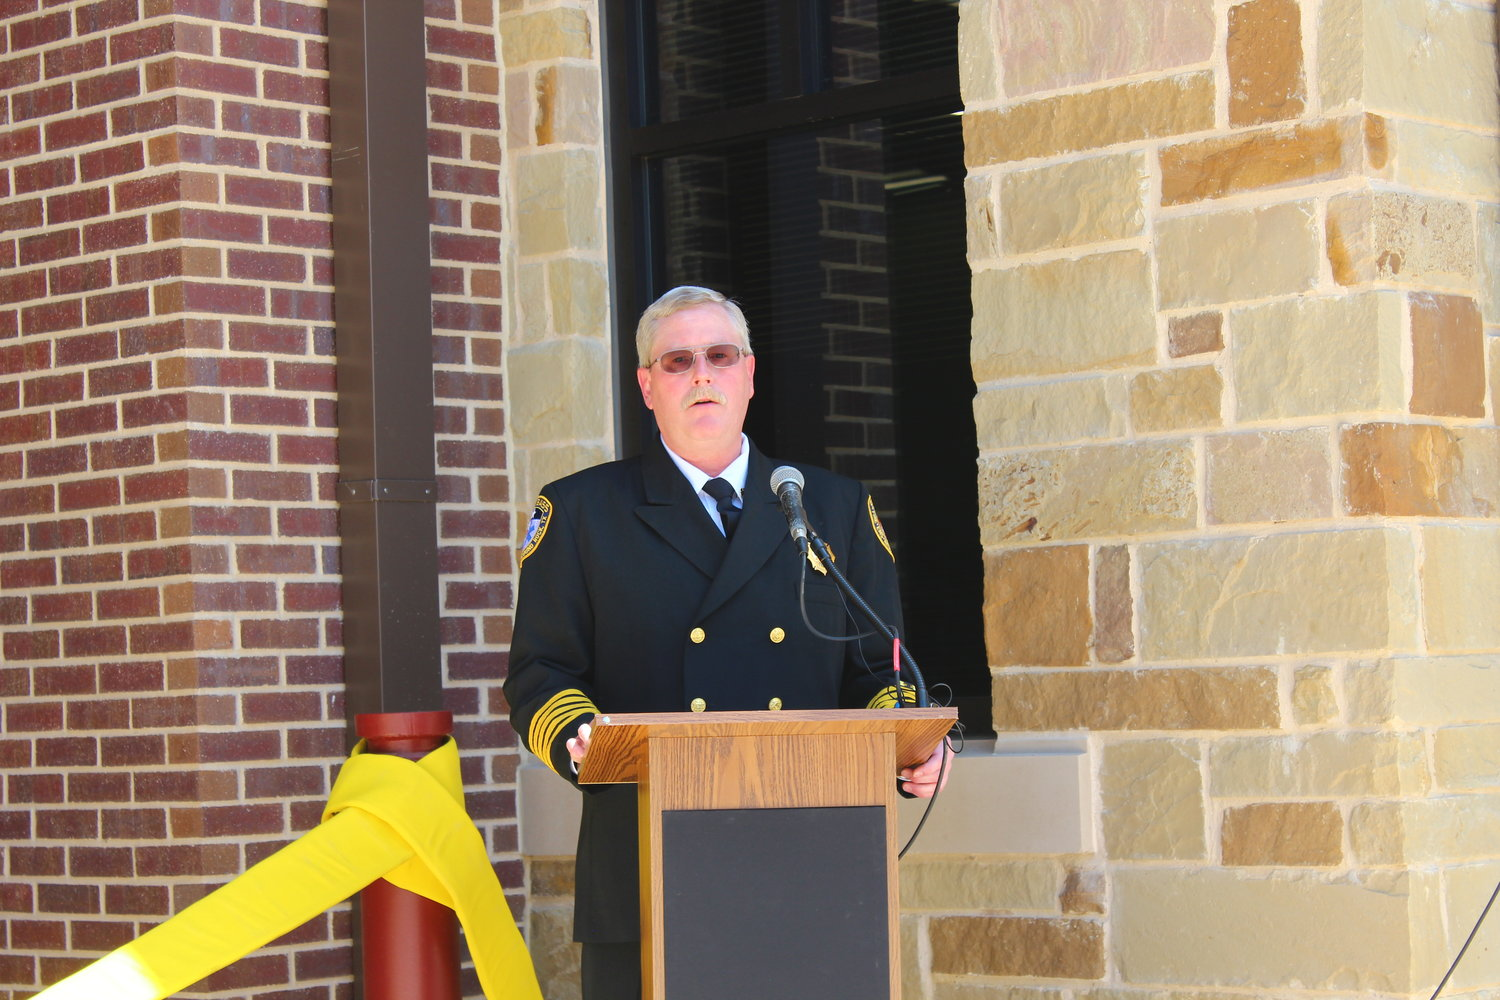 Sam Bass Fire Chief David Kieschnick speaks during the grand opening of the Sam Bass Fire Station 3 in Round Rock during a grand opening ceremony on May 16, 2019.